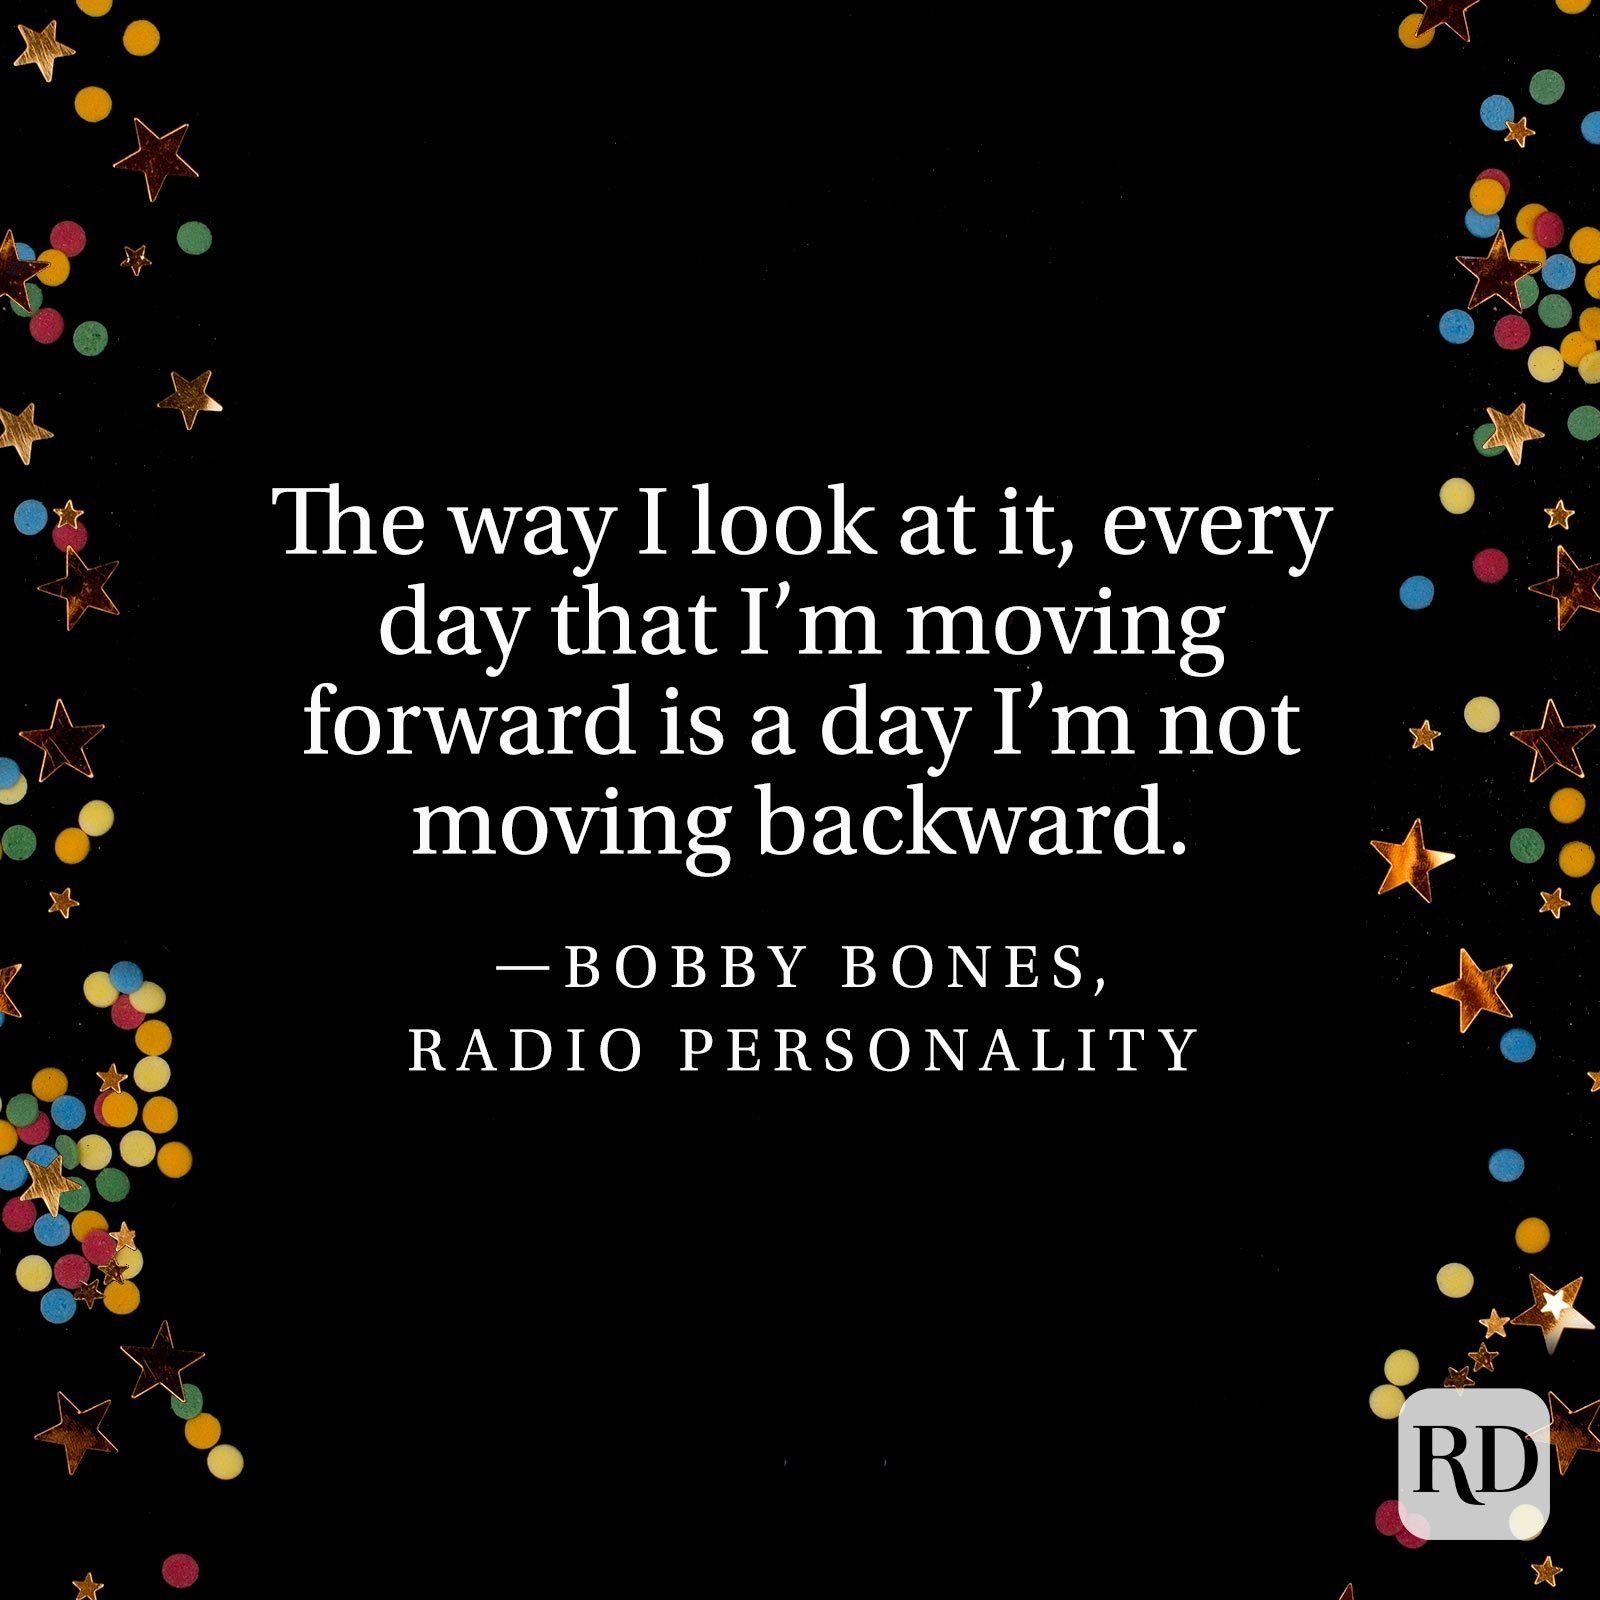 """The way I look at it, every day that I'm moving forward is a day I'm not moving backward."" —Bobby Bones, radio personality"